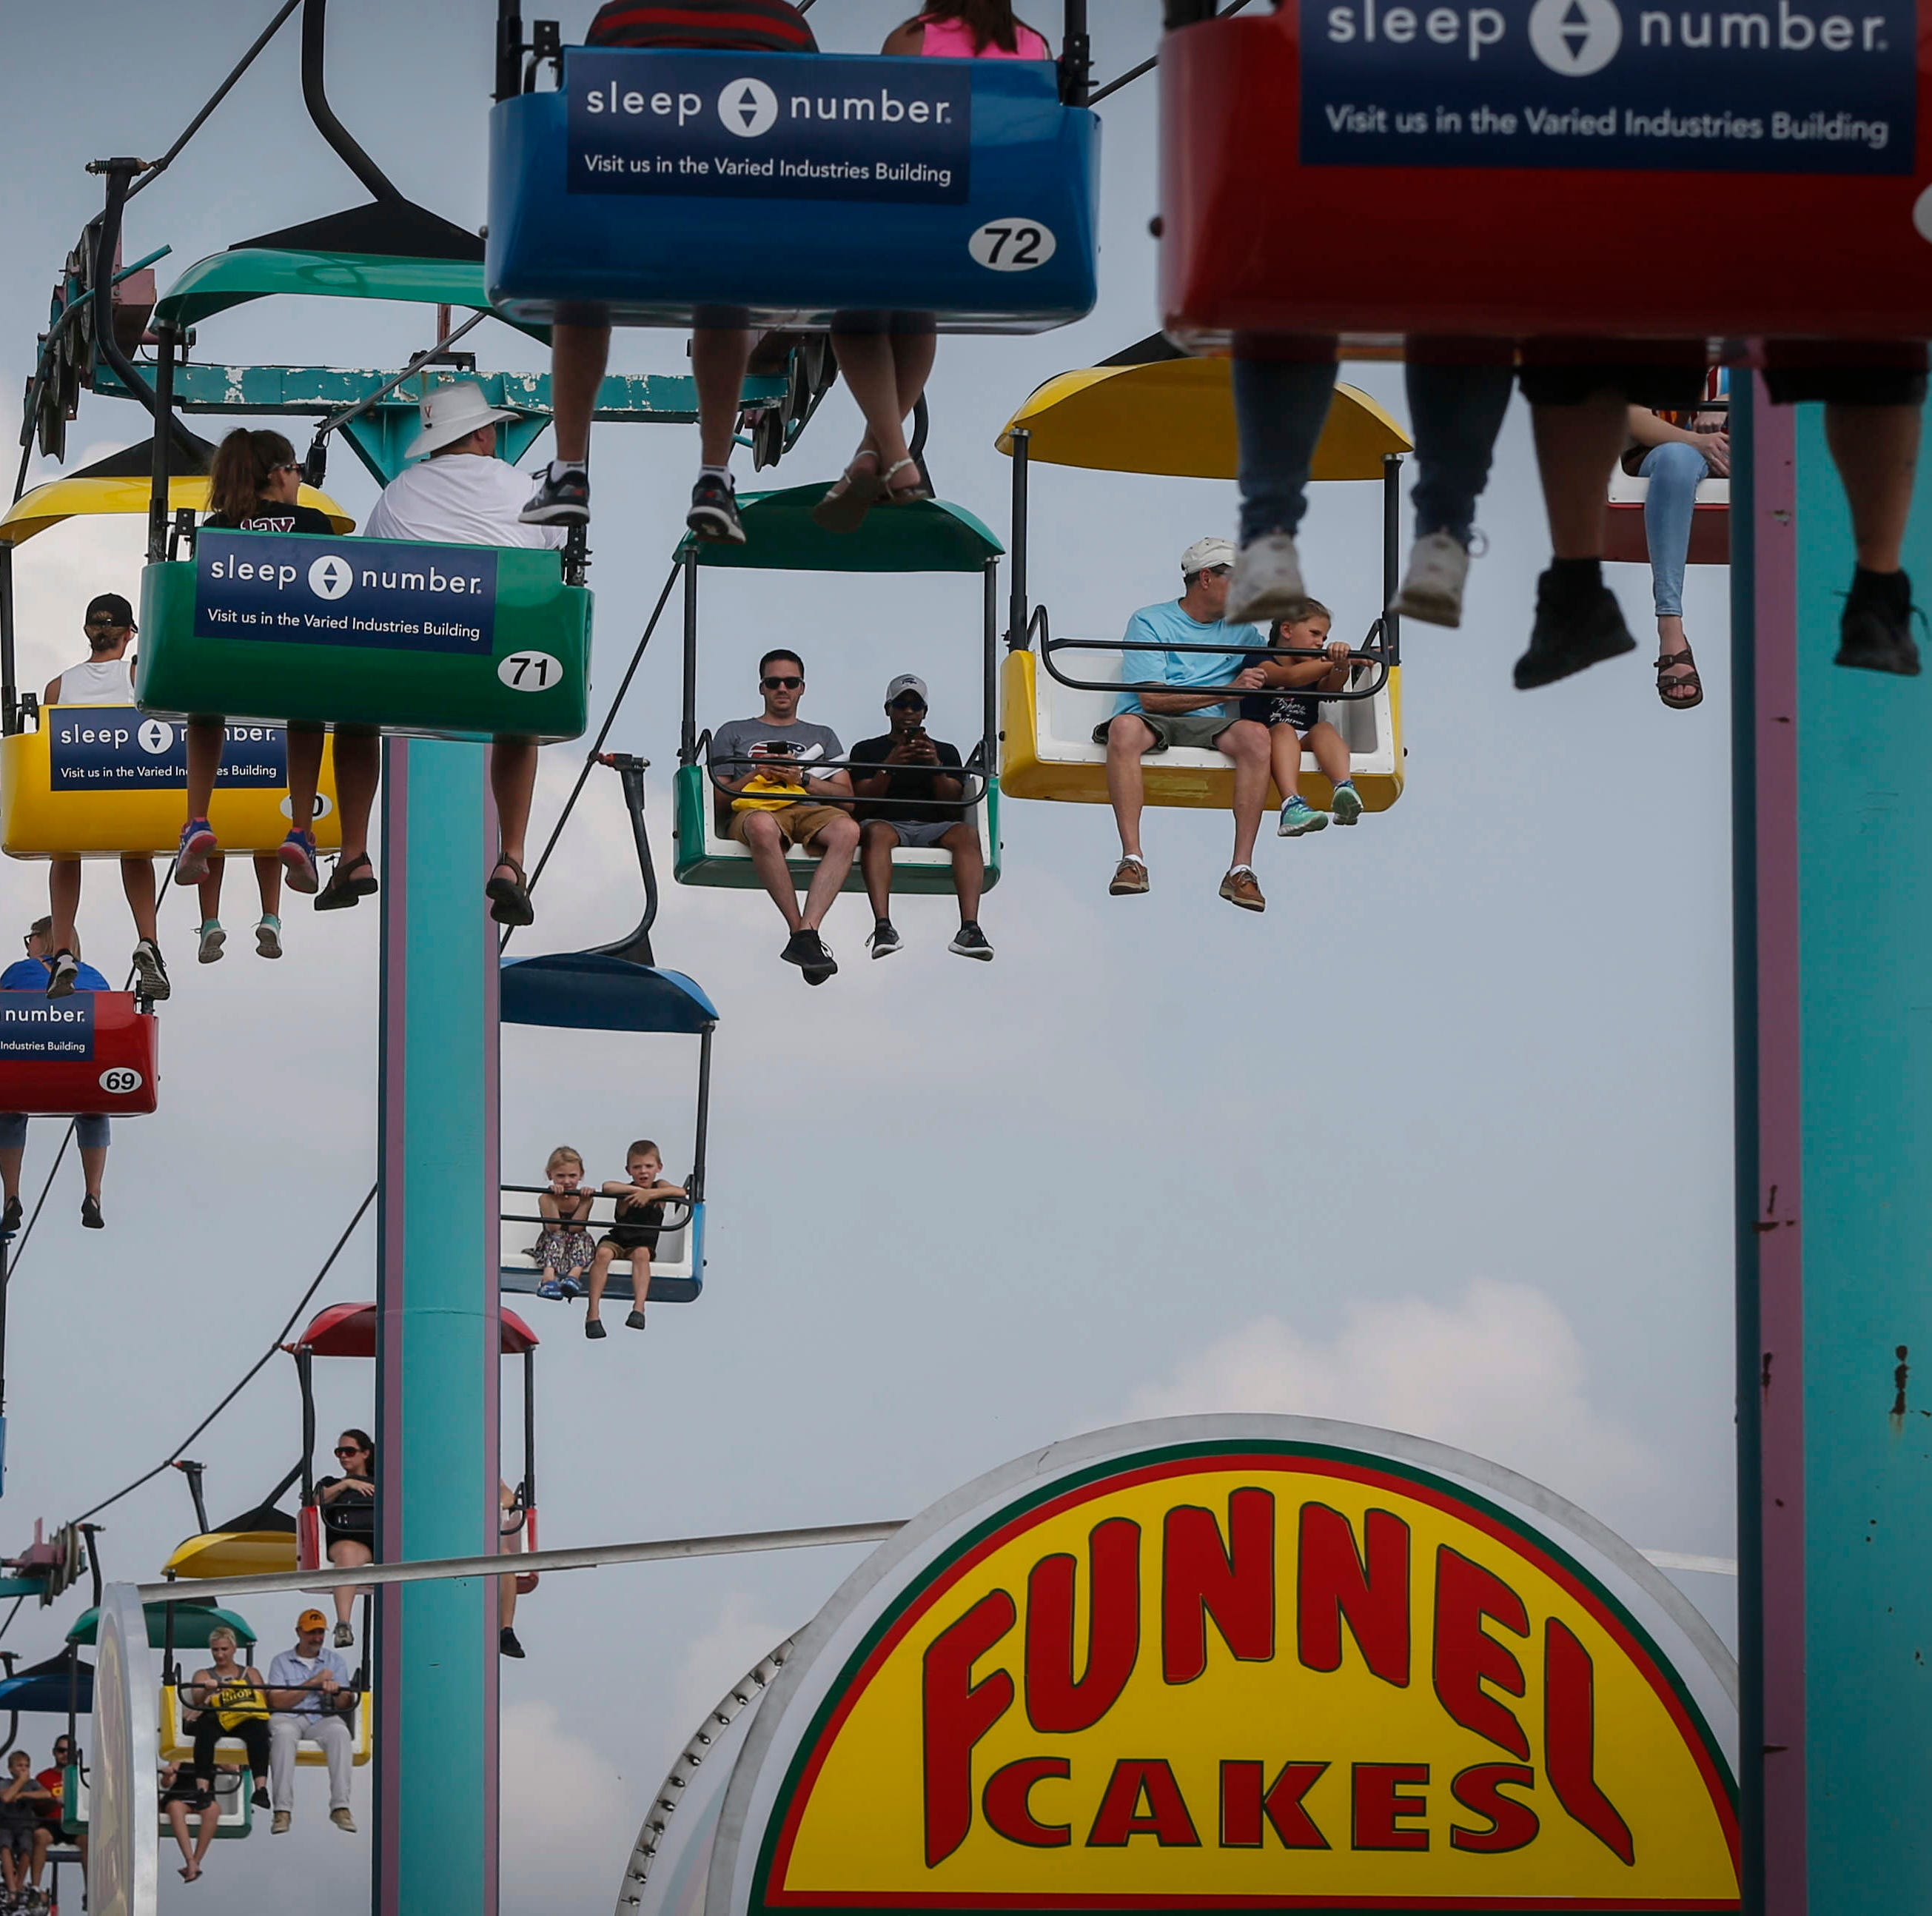 2018 was another record-breaking year for the Iowa State Fair